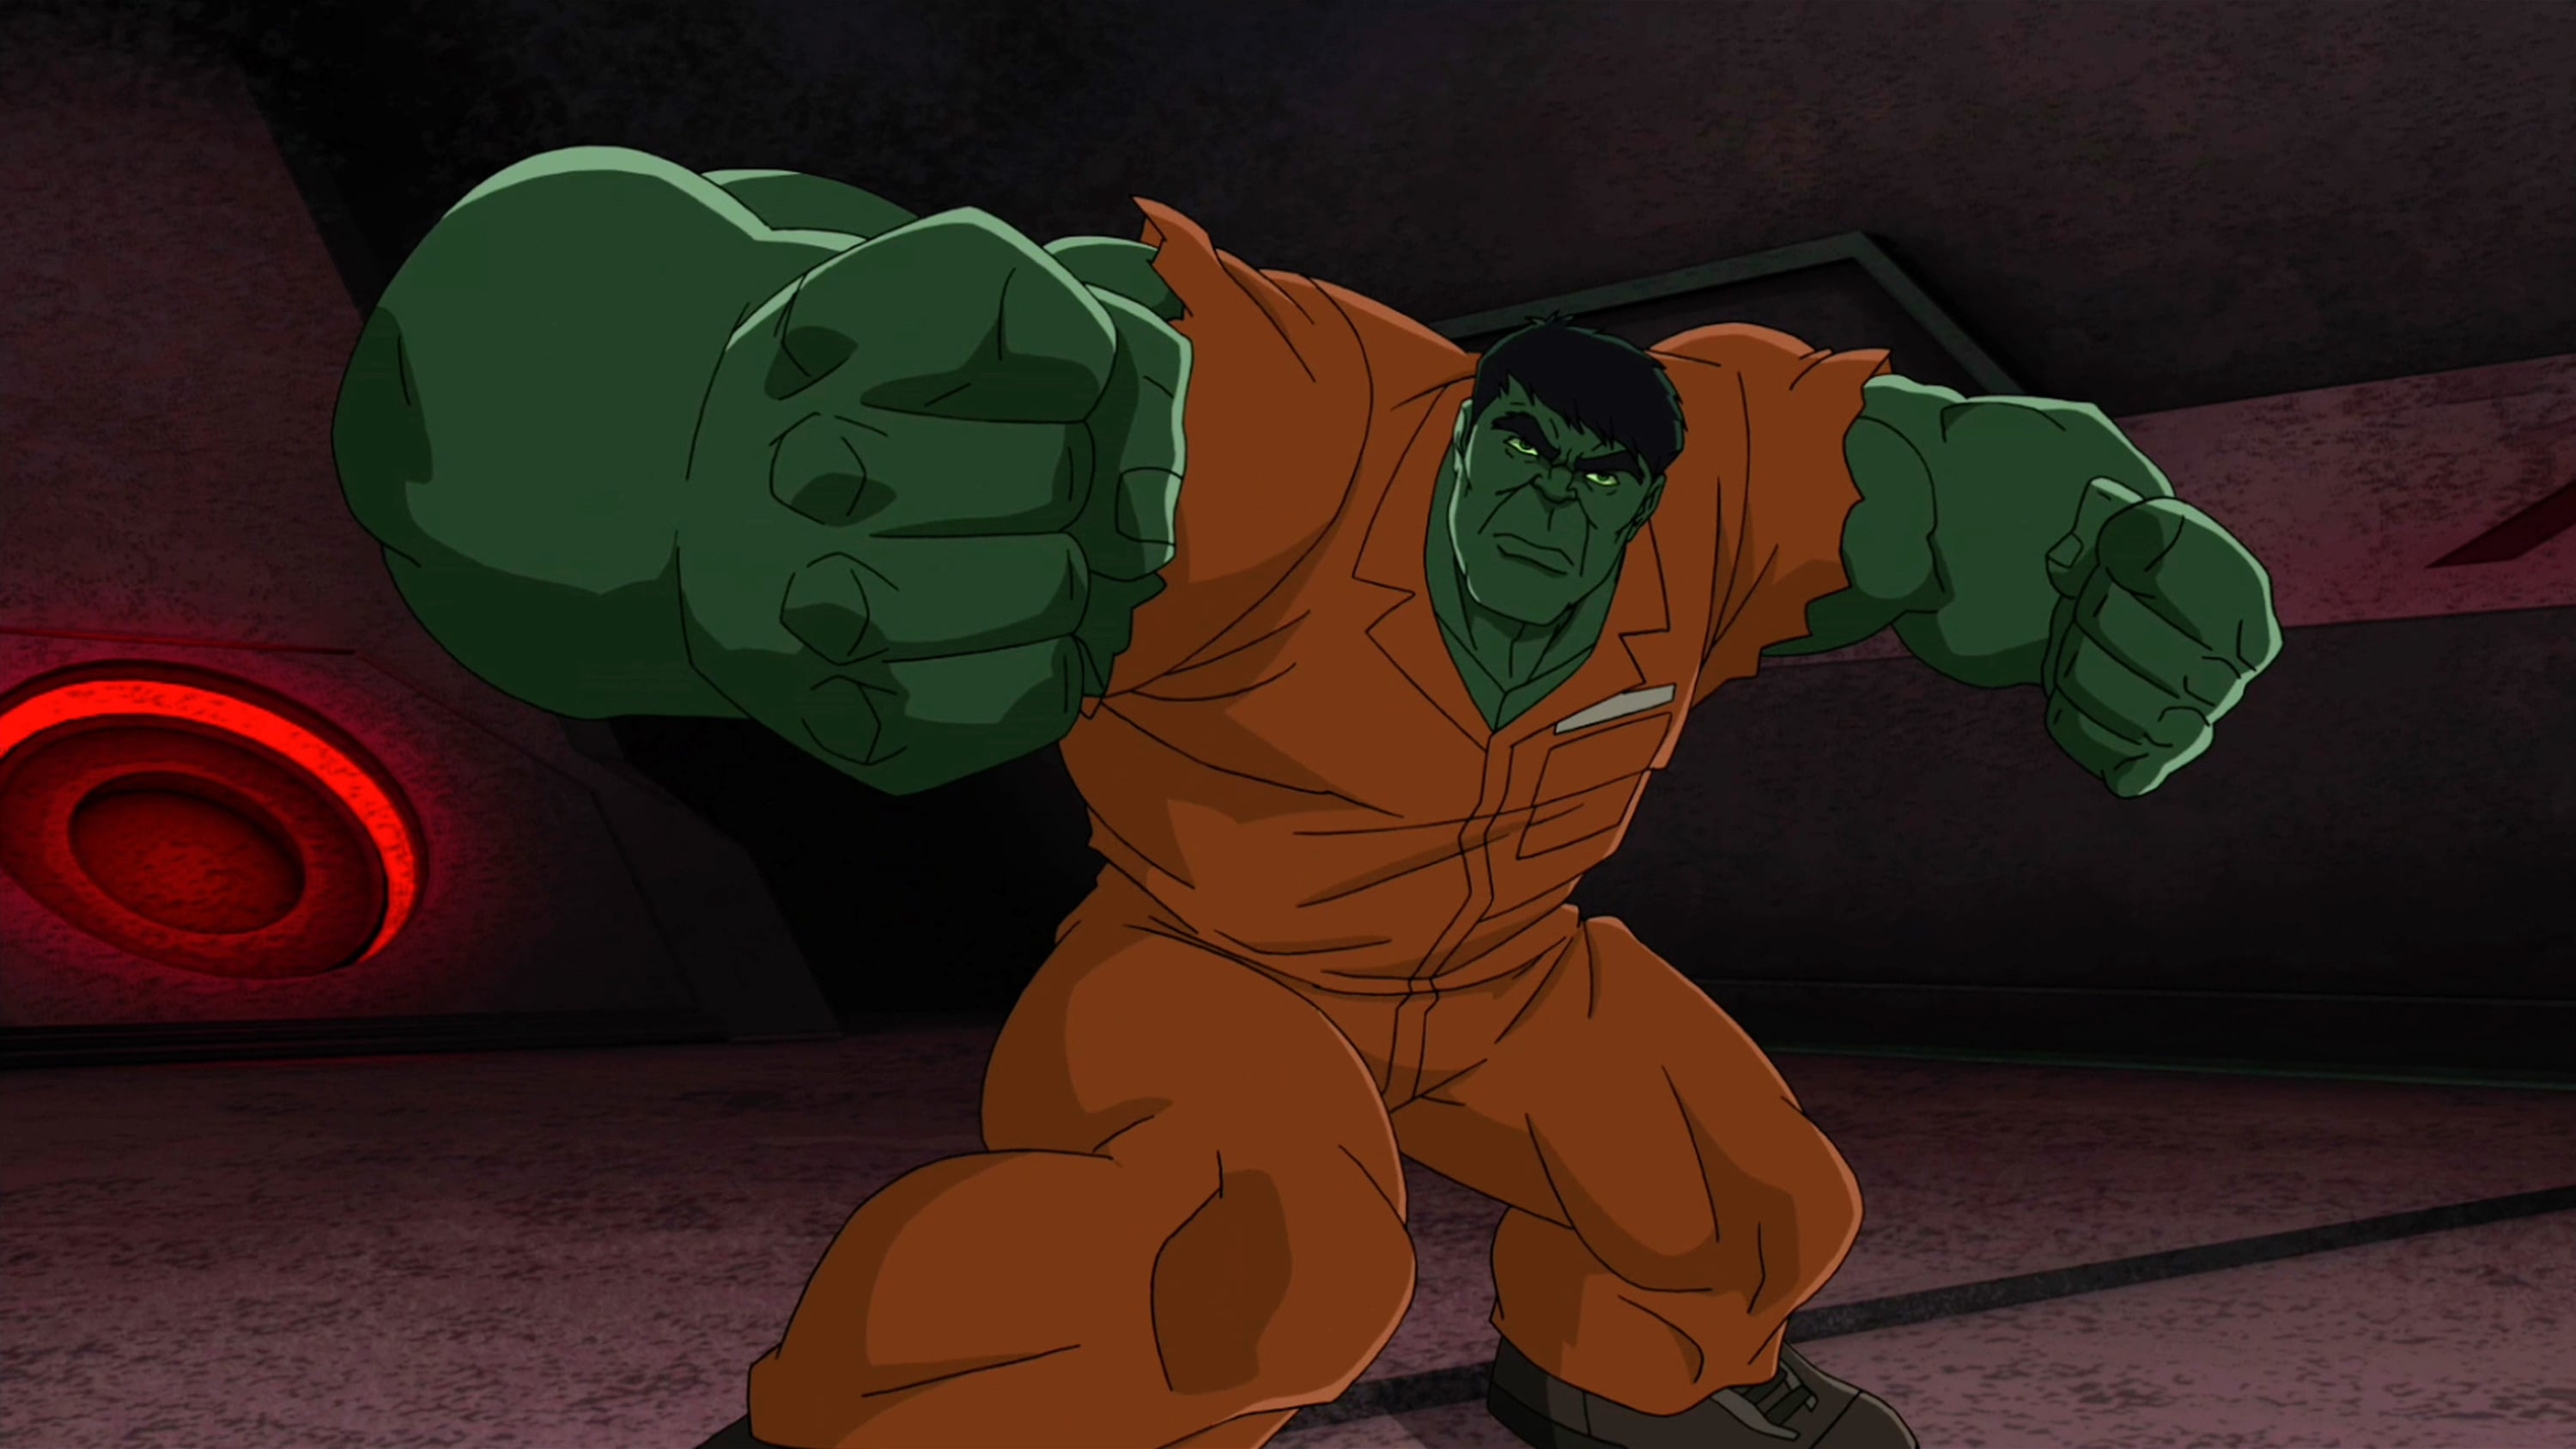 Hulk and the Agents of S.M.A.S.H. Season 2 12